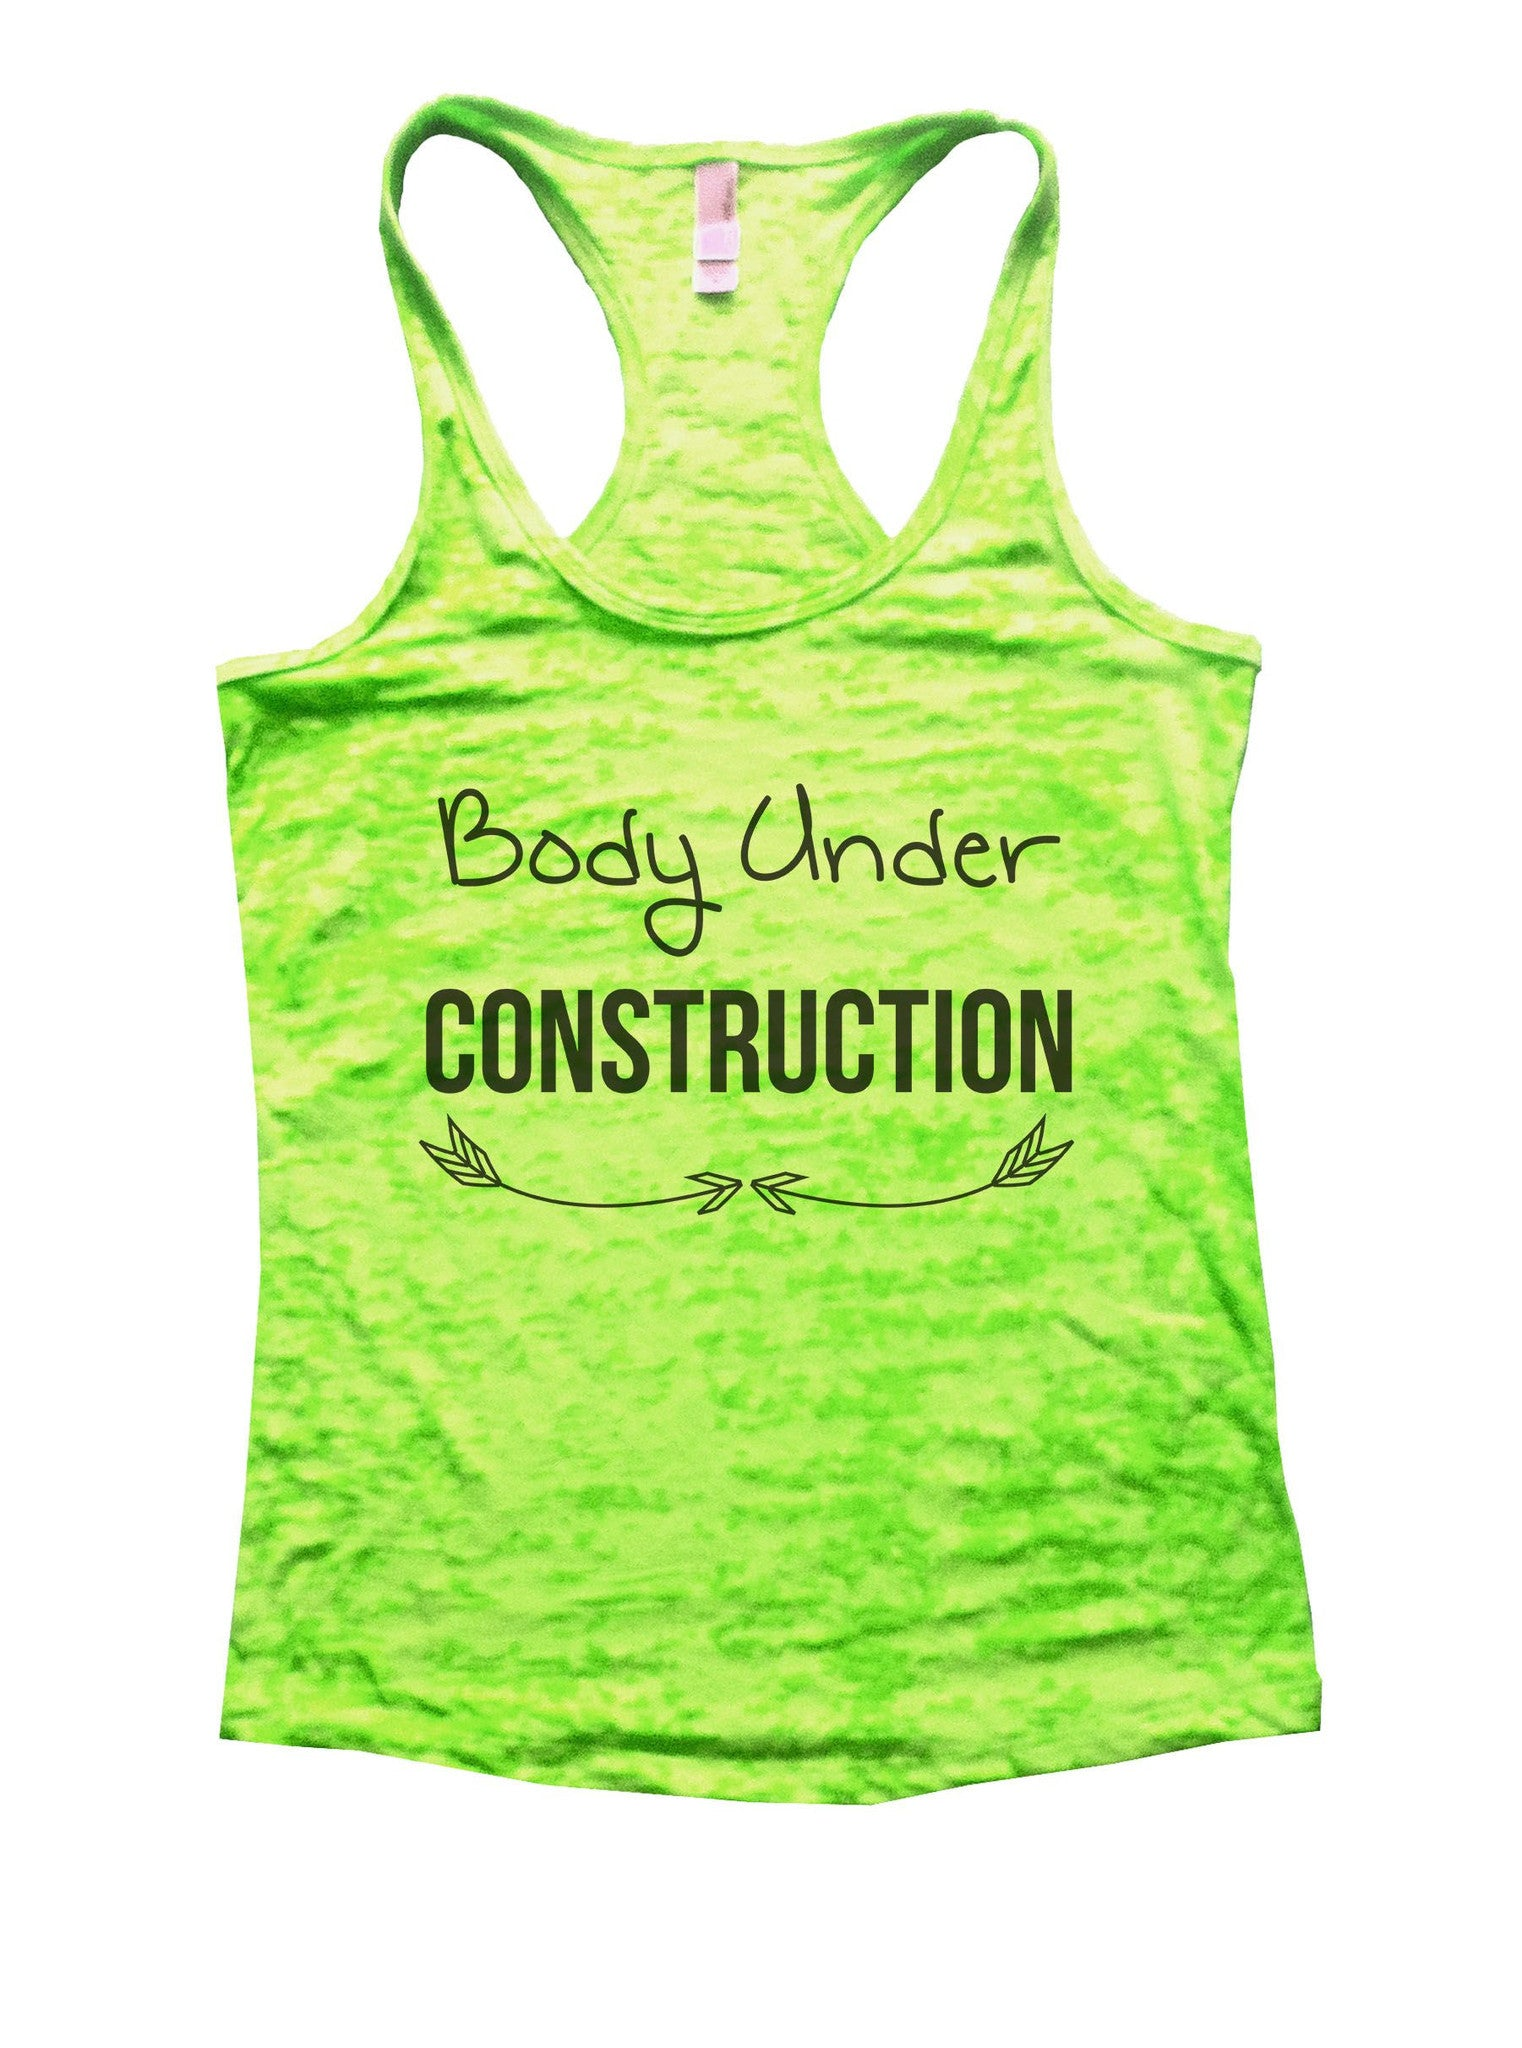 Body Under Construction Burnout Tank Top By BurnoutTankTops.com - 877 - Funny Shirts Tank Tops Burnouts and Triblends  - 2